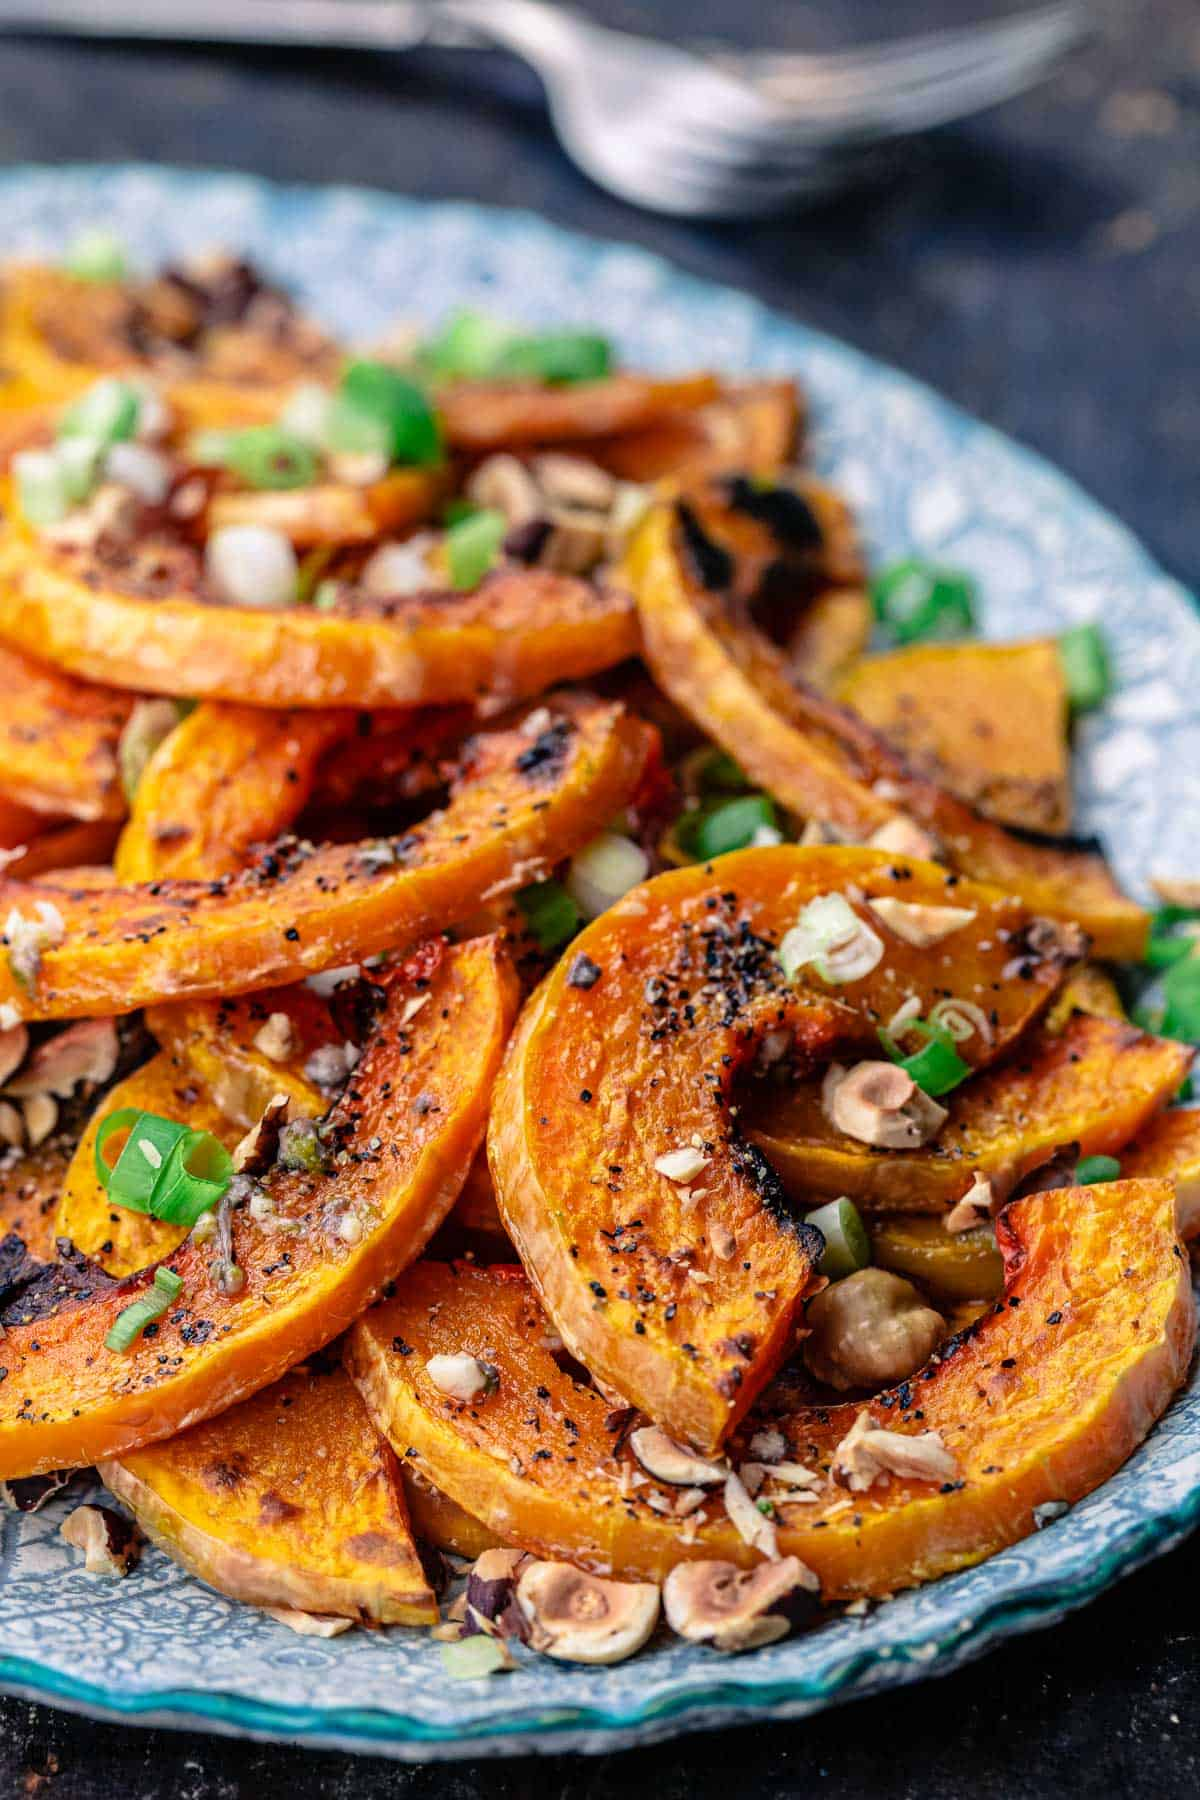 roasted butternut squash slices on a platter